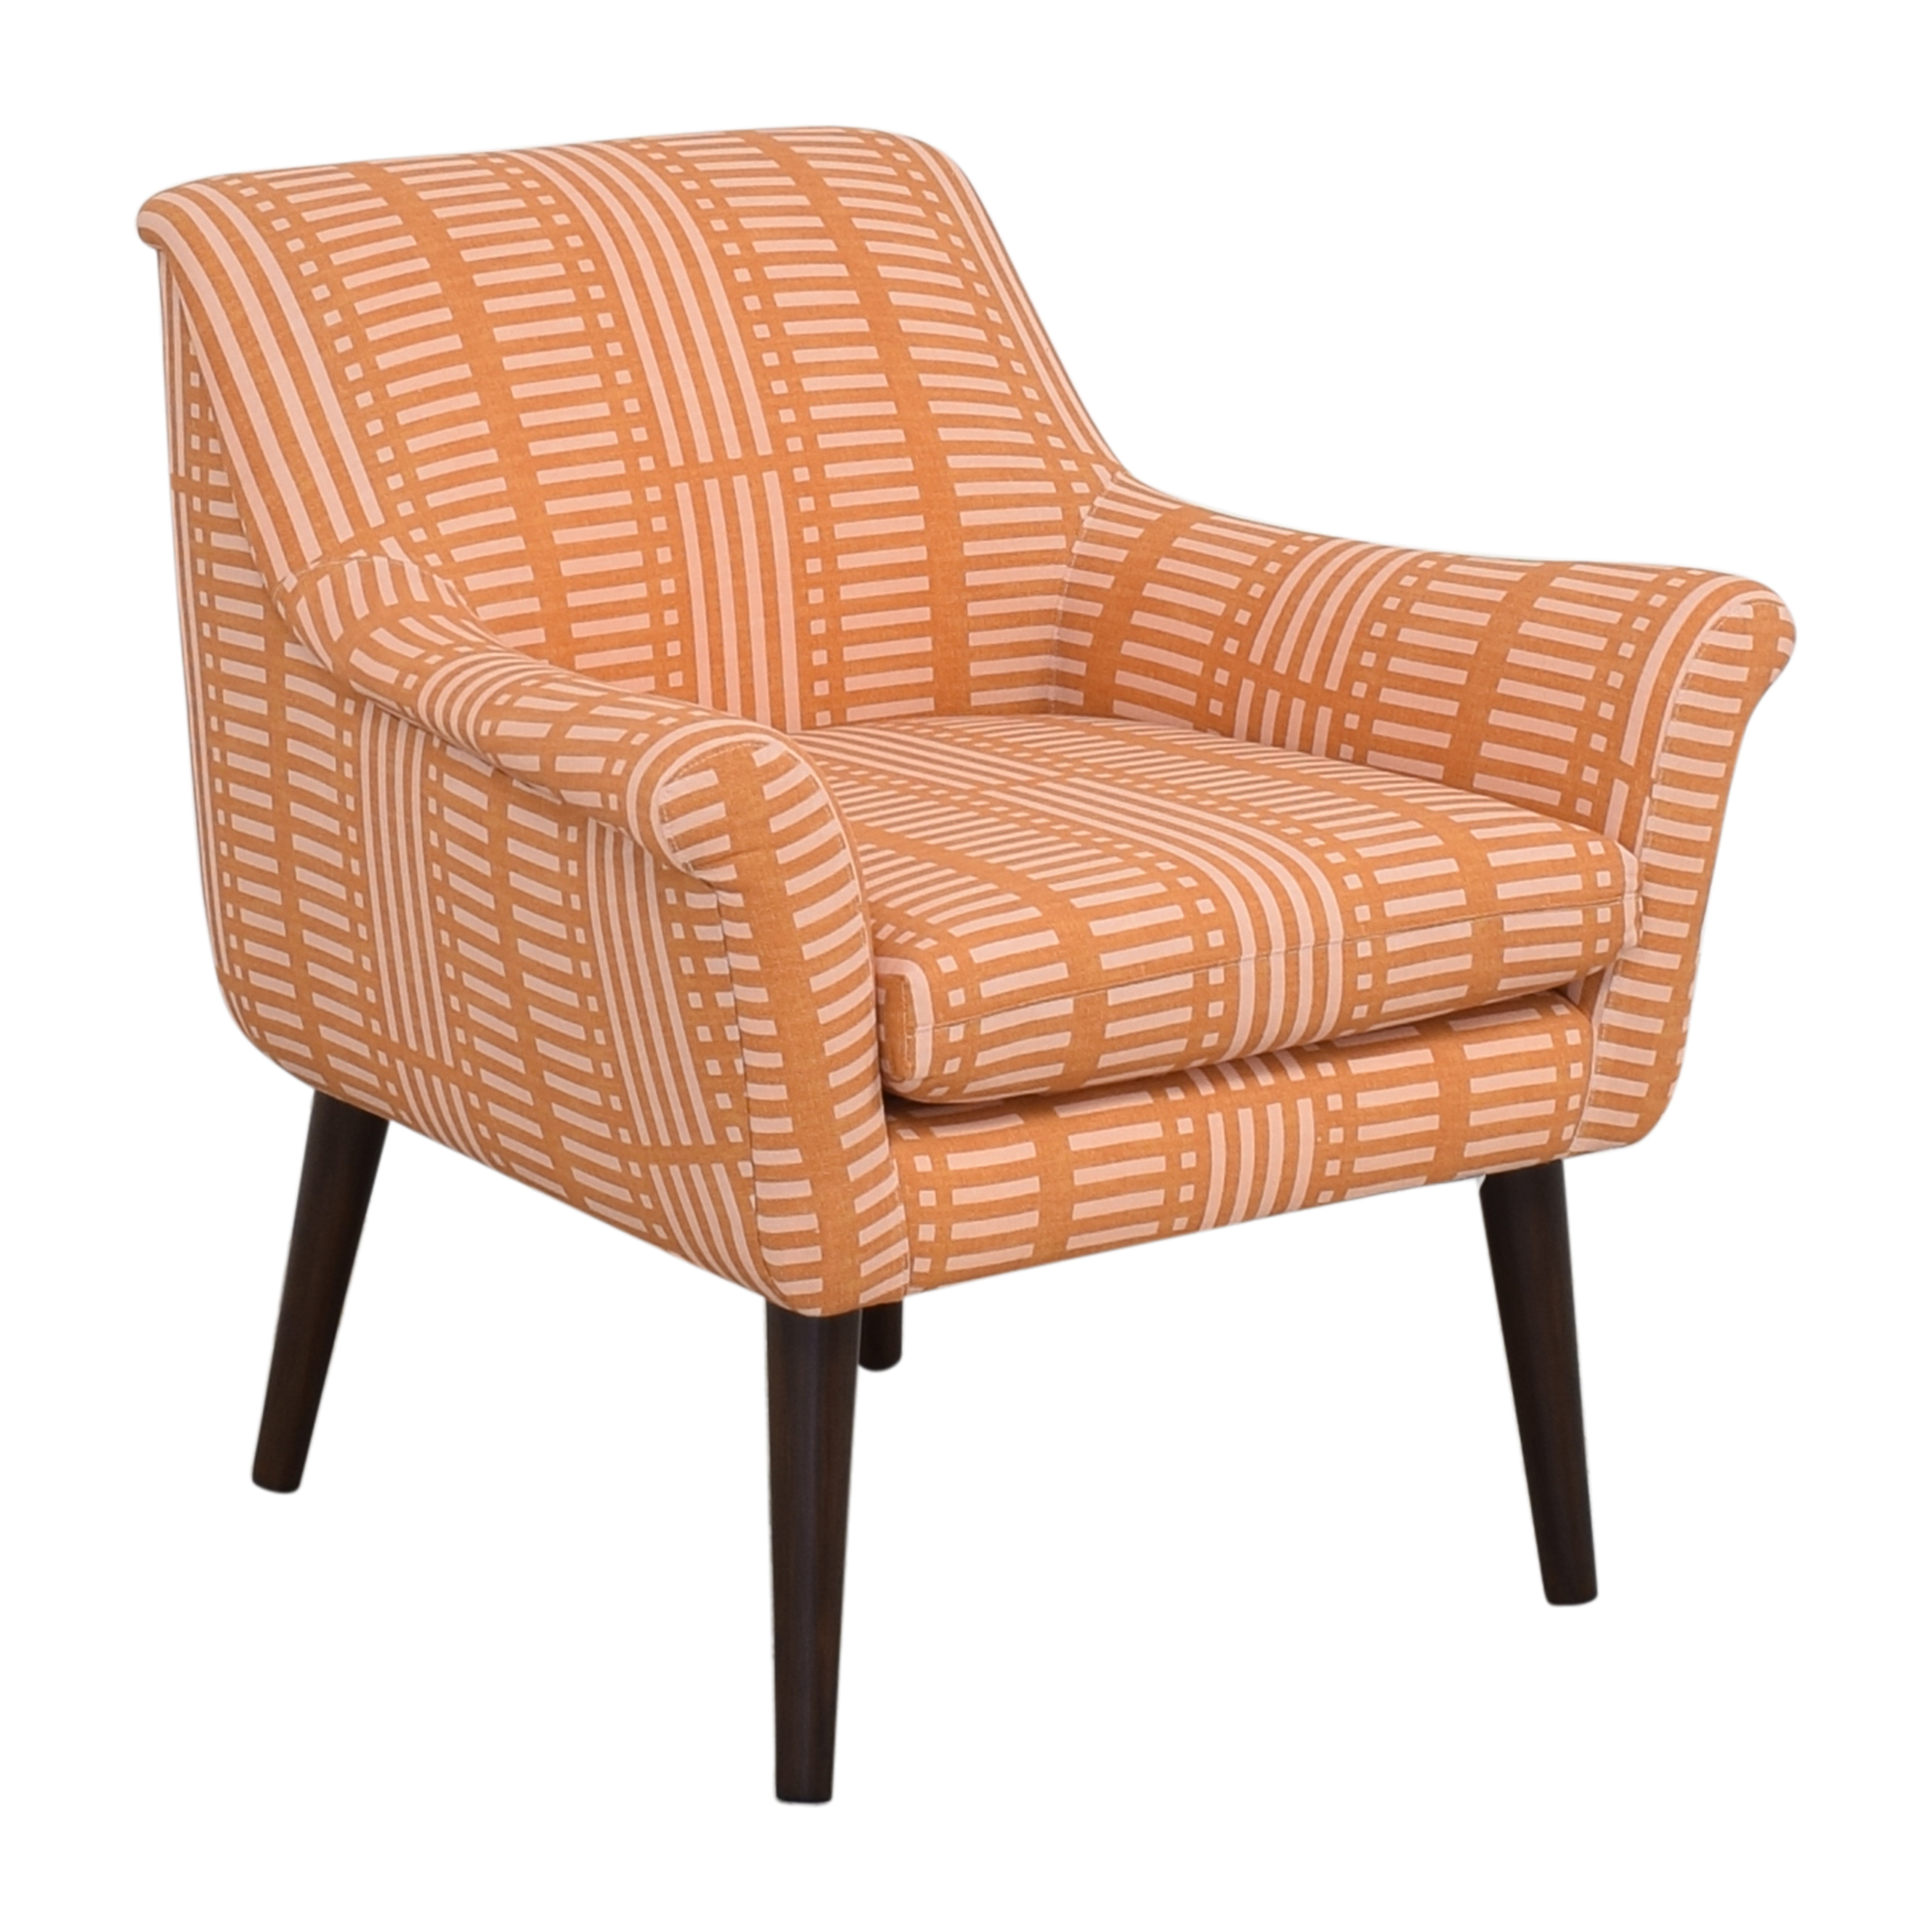 shop The Inside The Inside Cocktail Chair online